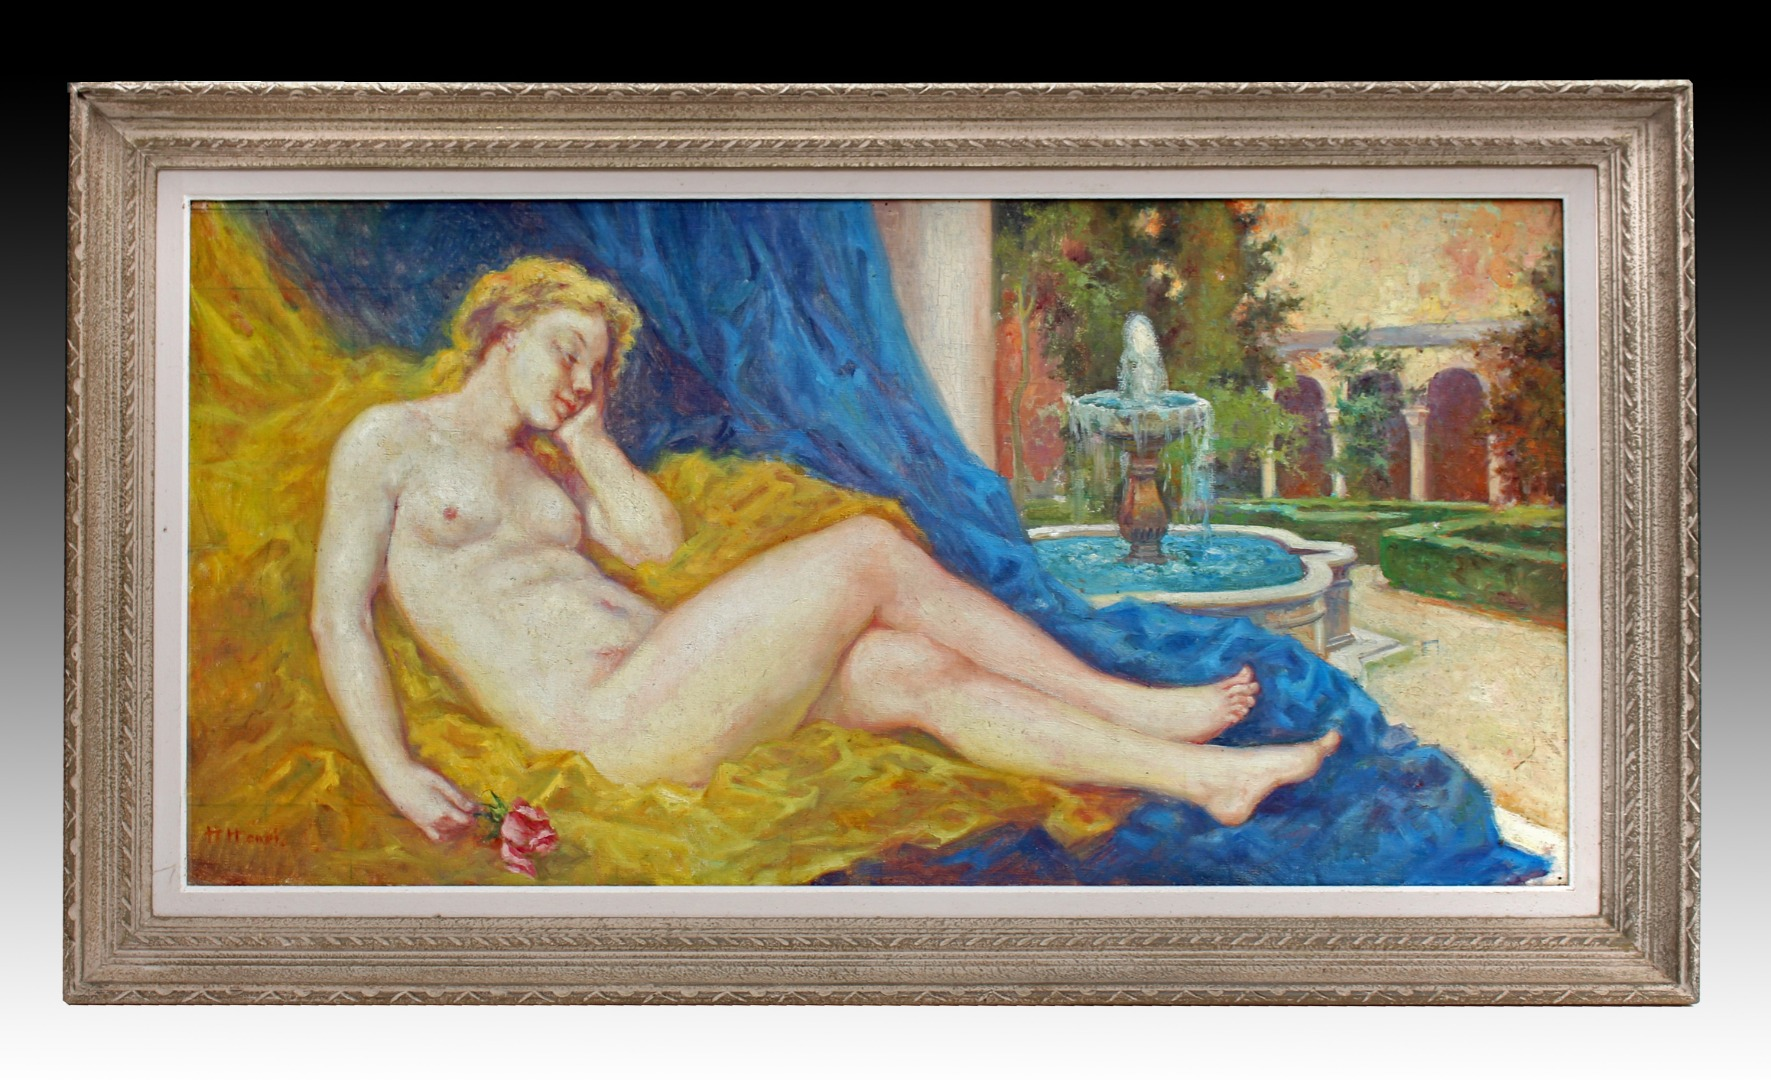 ART DECO PERIOD PAINTING